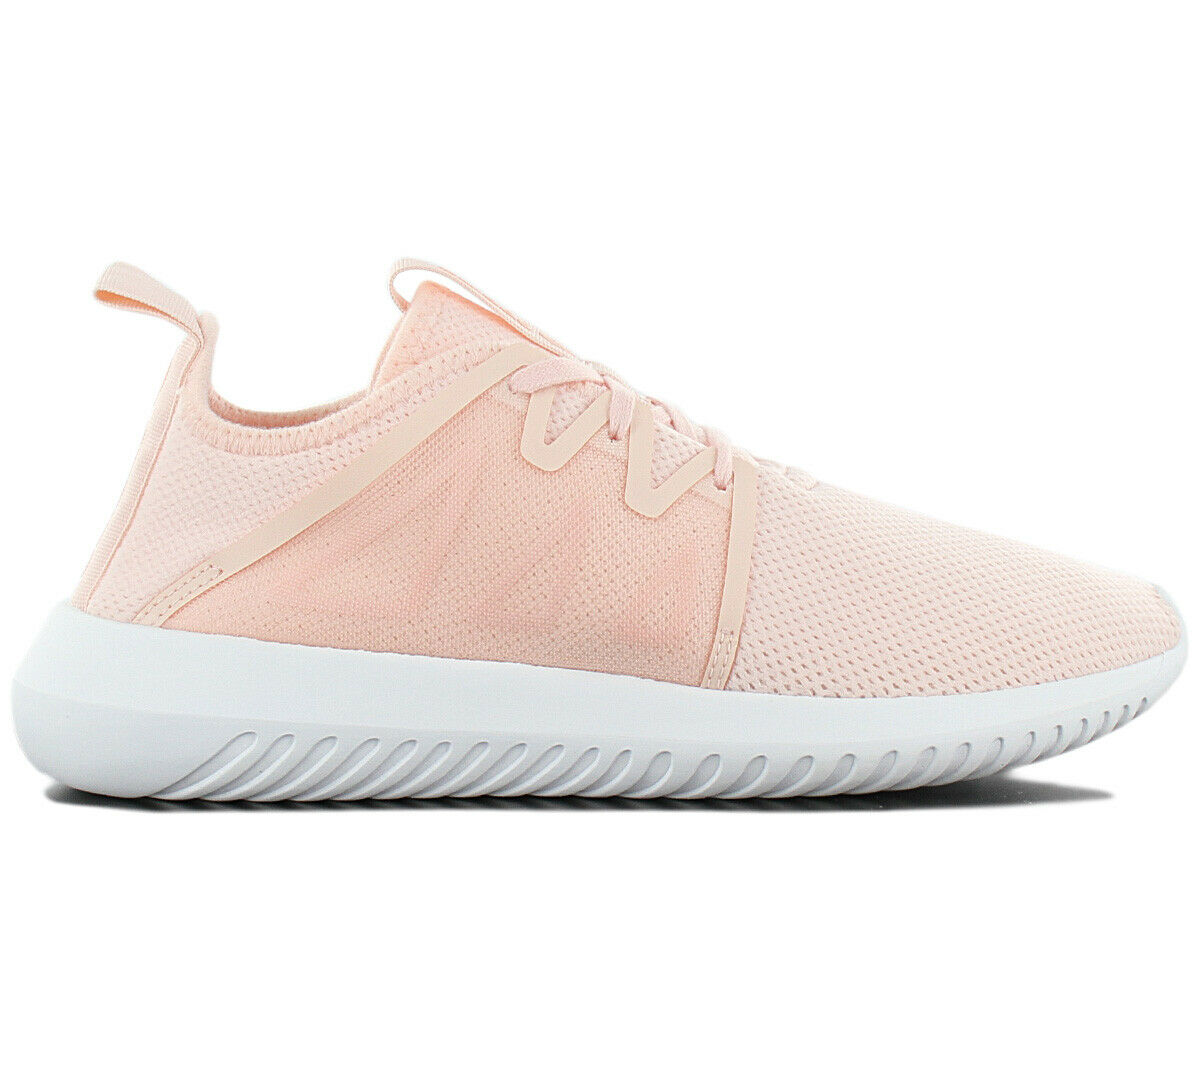 Adidas Originals Tubulaire Virale 2 W Chaussures Baskets pour Femmes BY2122 Rose